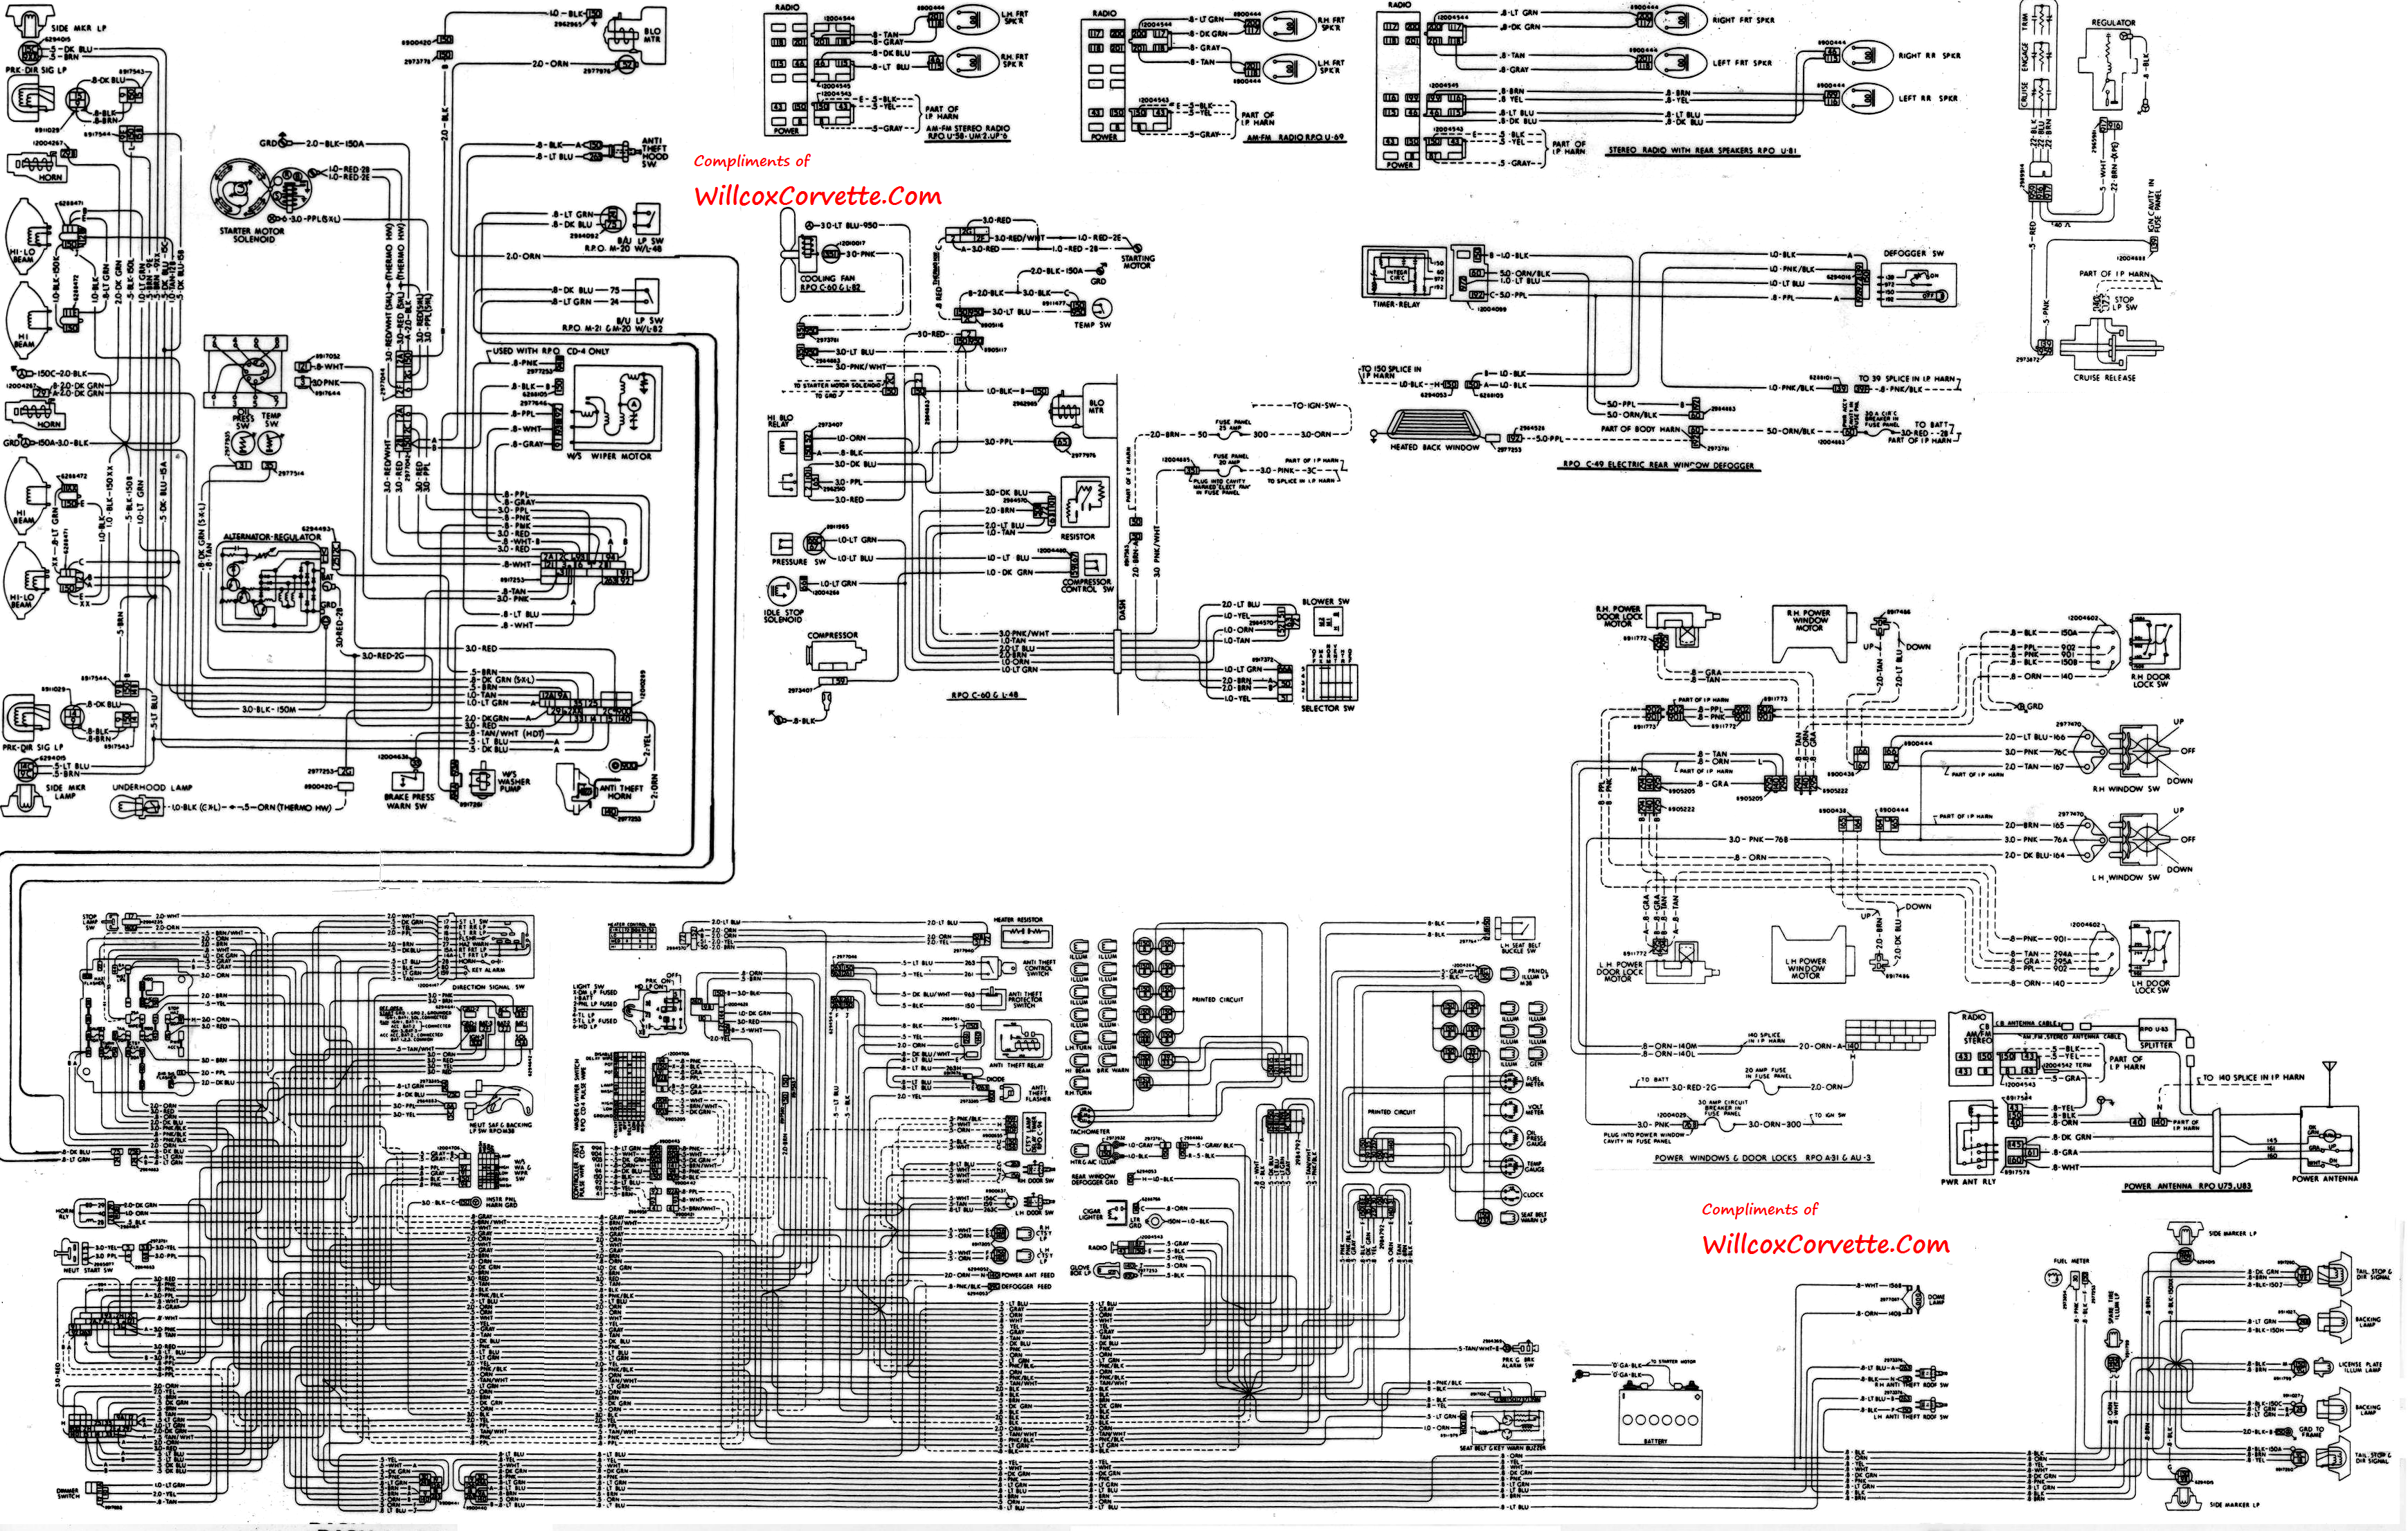 1979 wire diagram 1979 corvette tracer wiring diagram tracer schematic willcox 1984 corvette wiring diagram schematic at mifinder.co